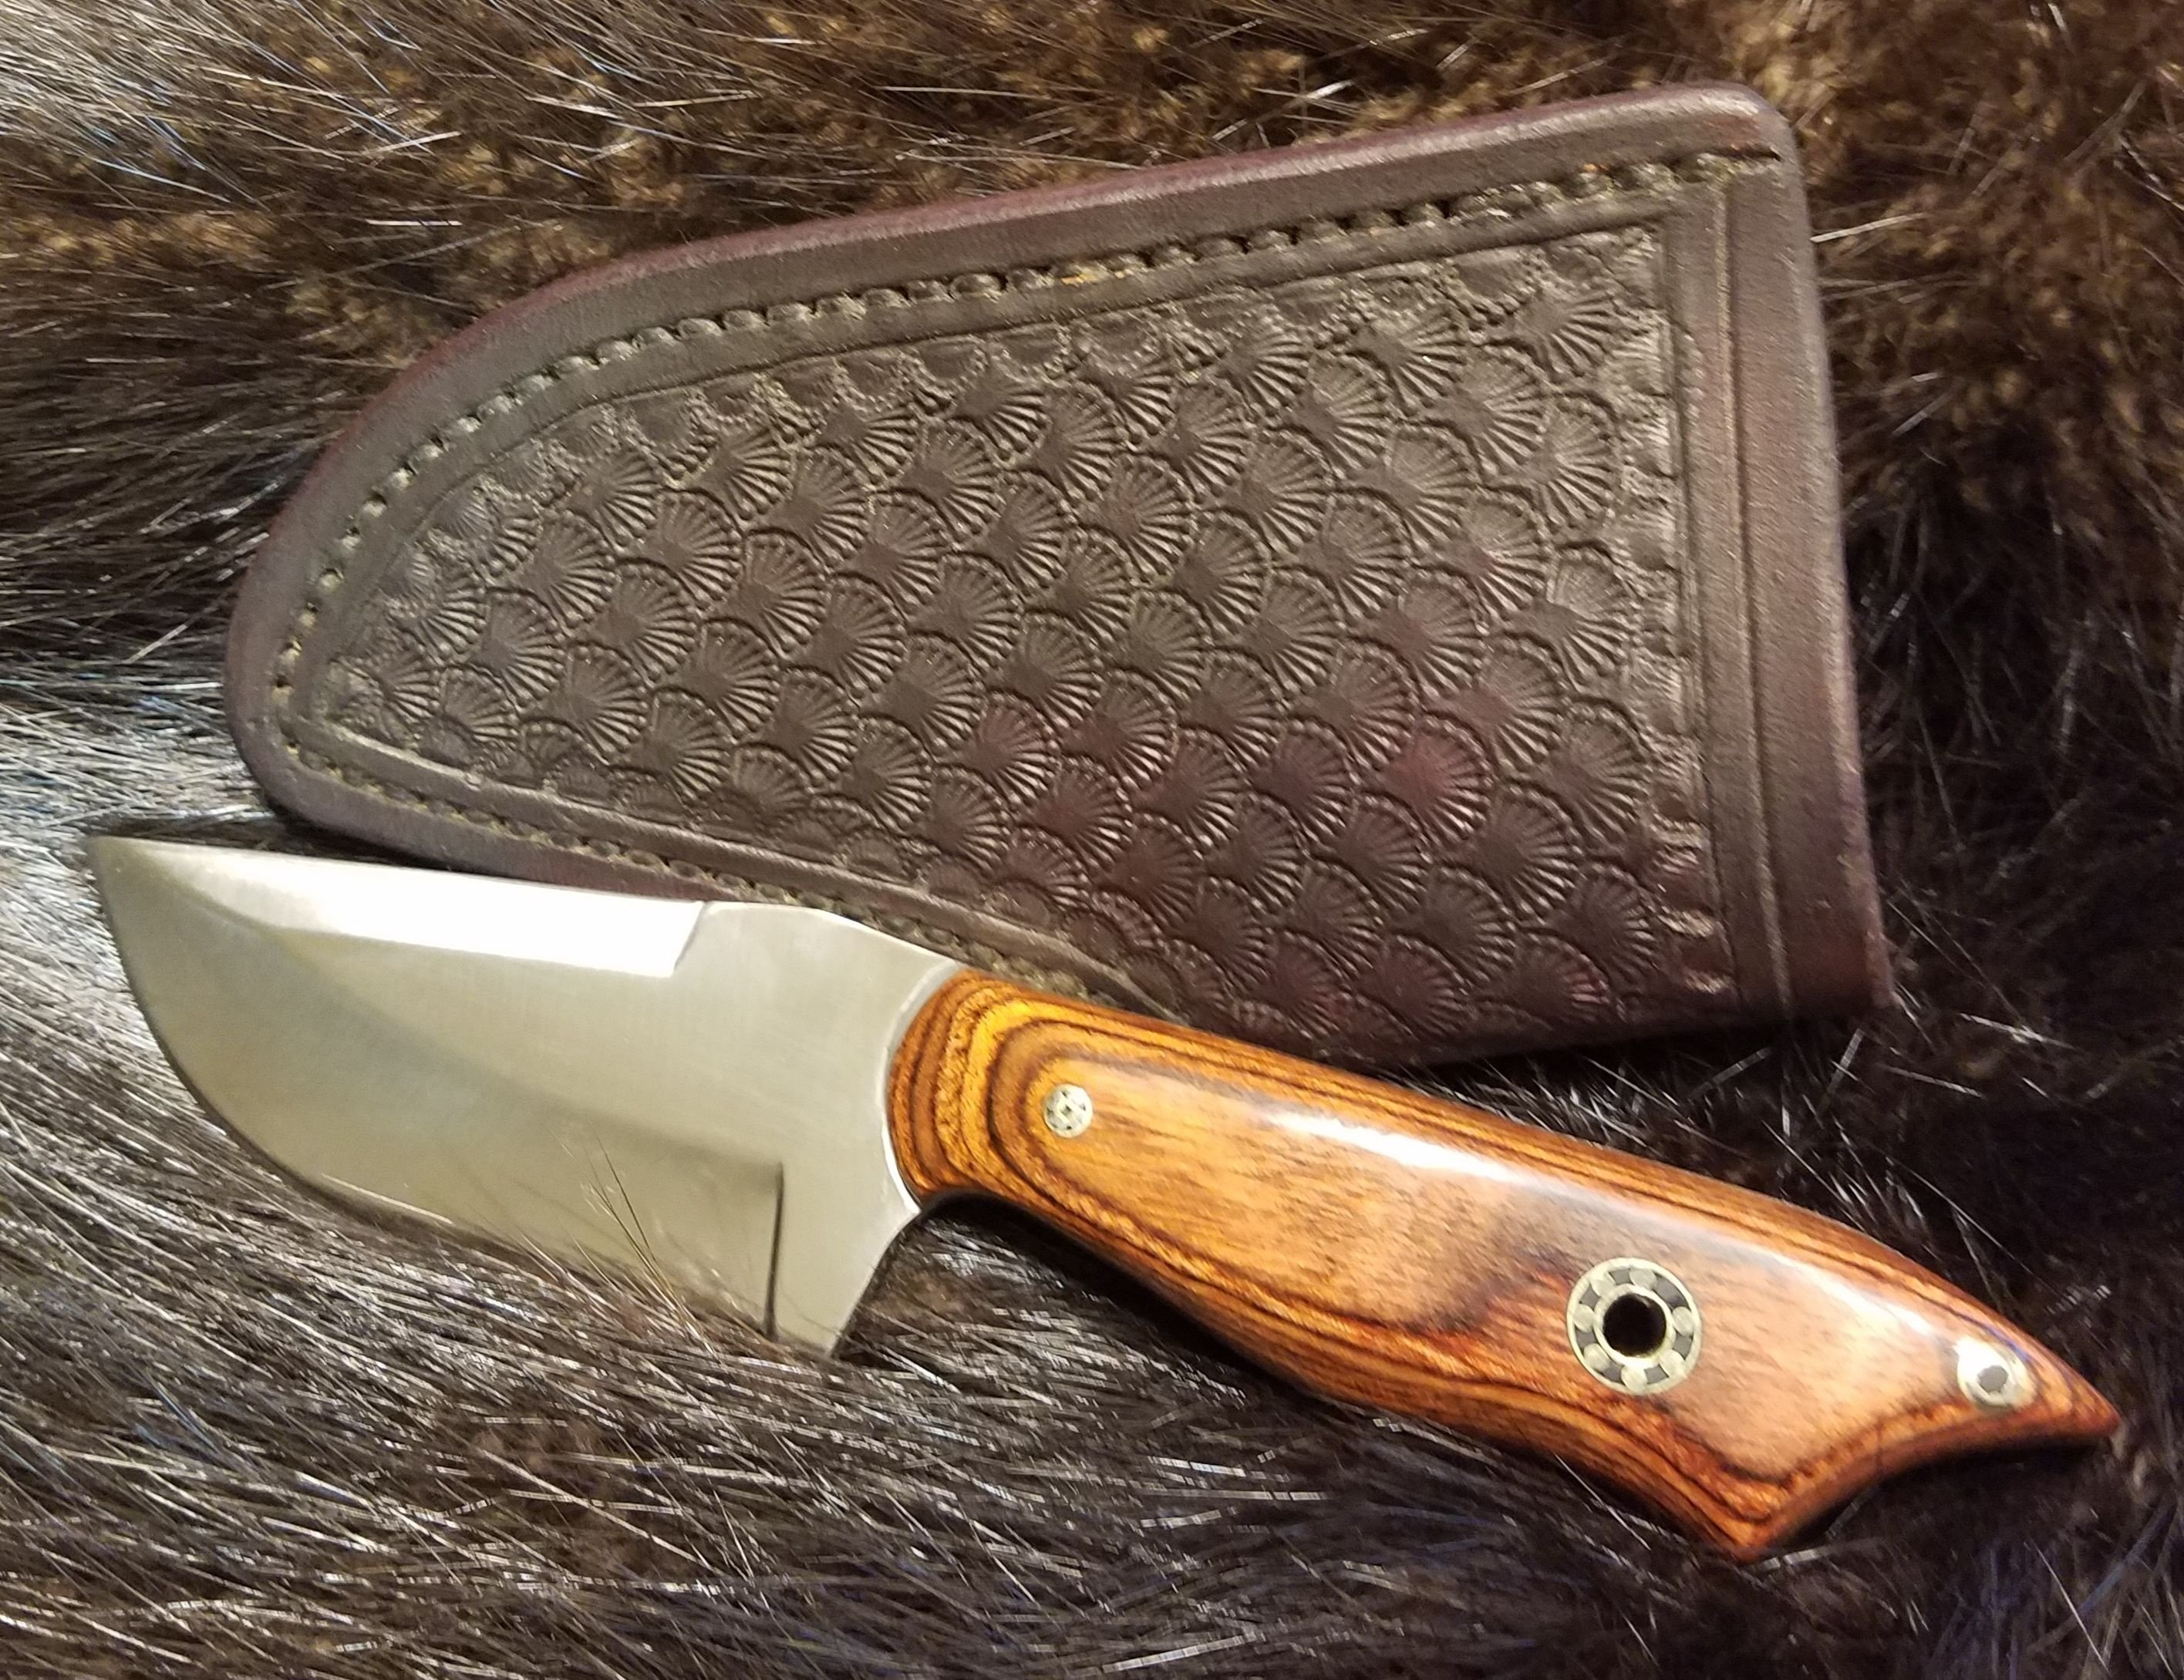 Skinner, with Cocobolo Dymondwood handle, Hand tooled, hand stitched Leather Sheath,   $185.00